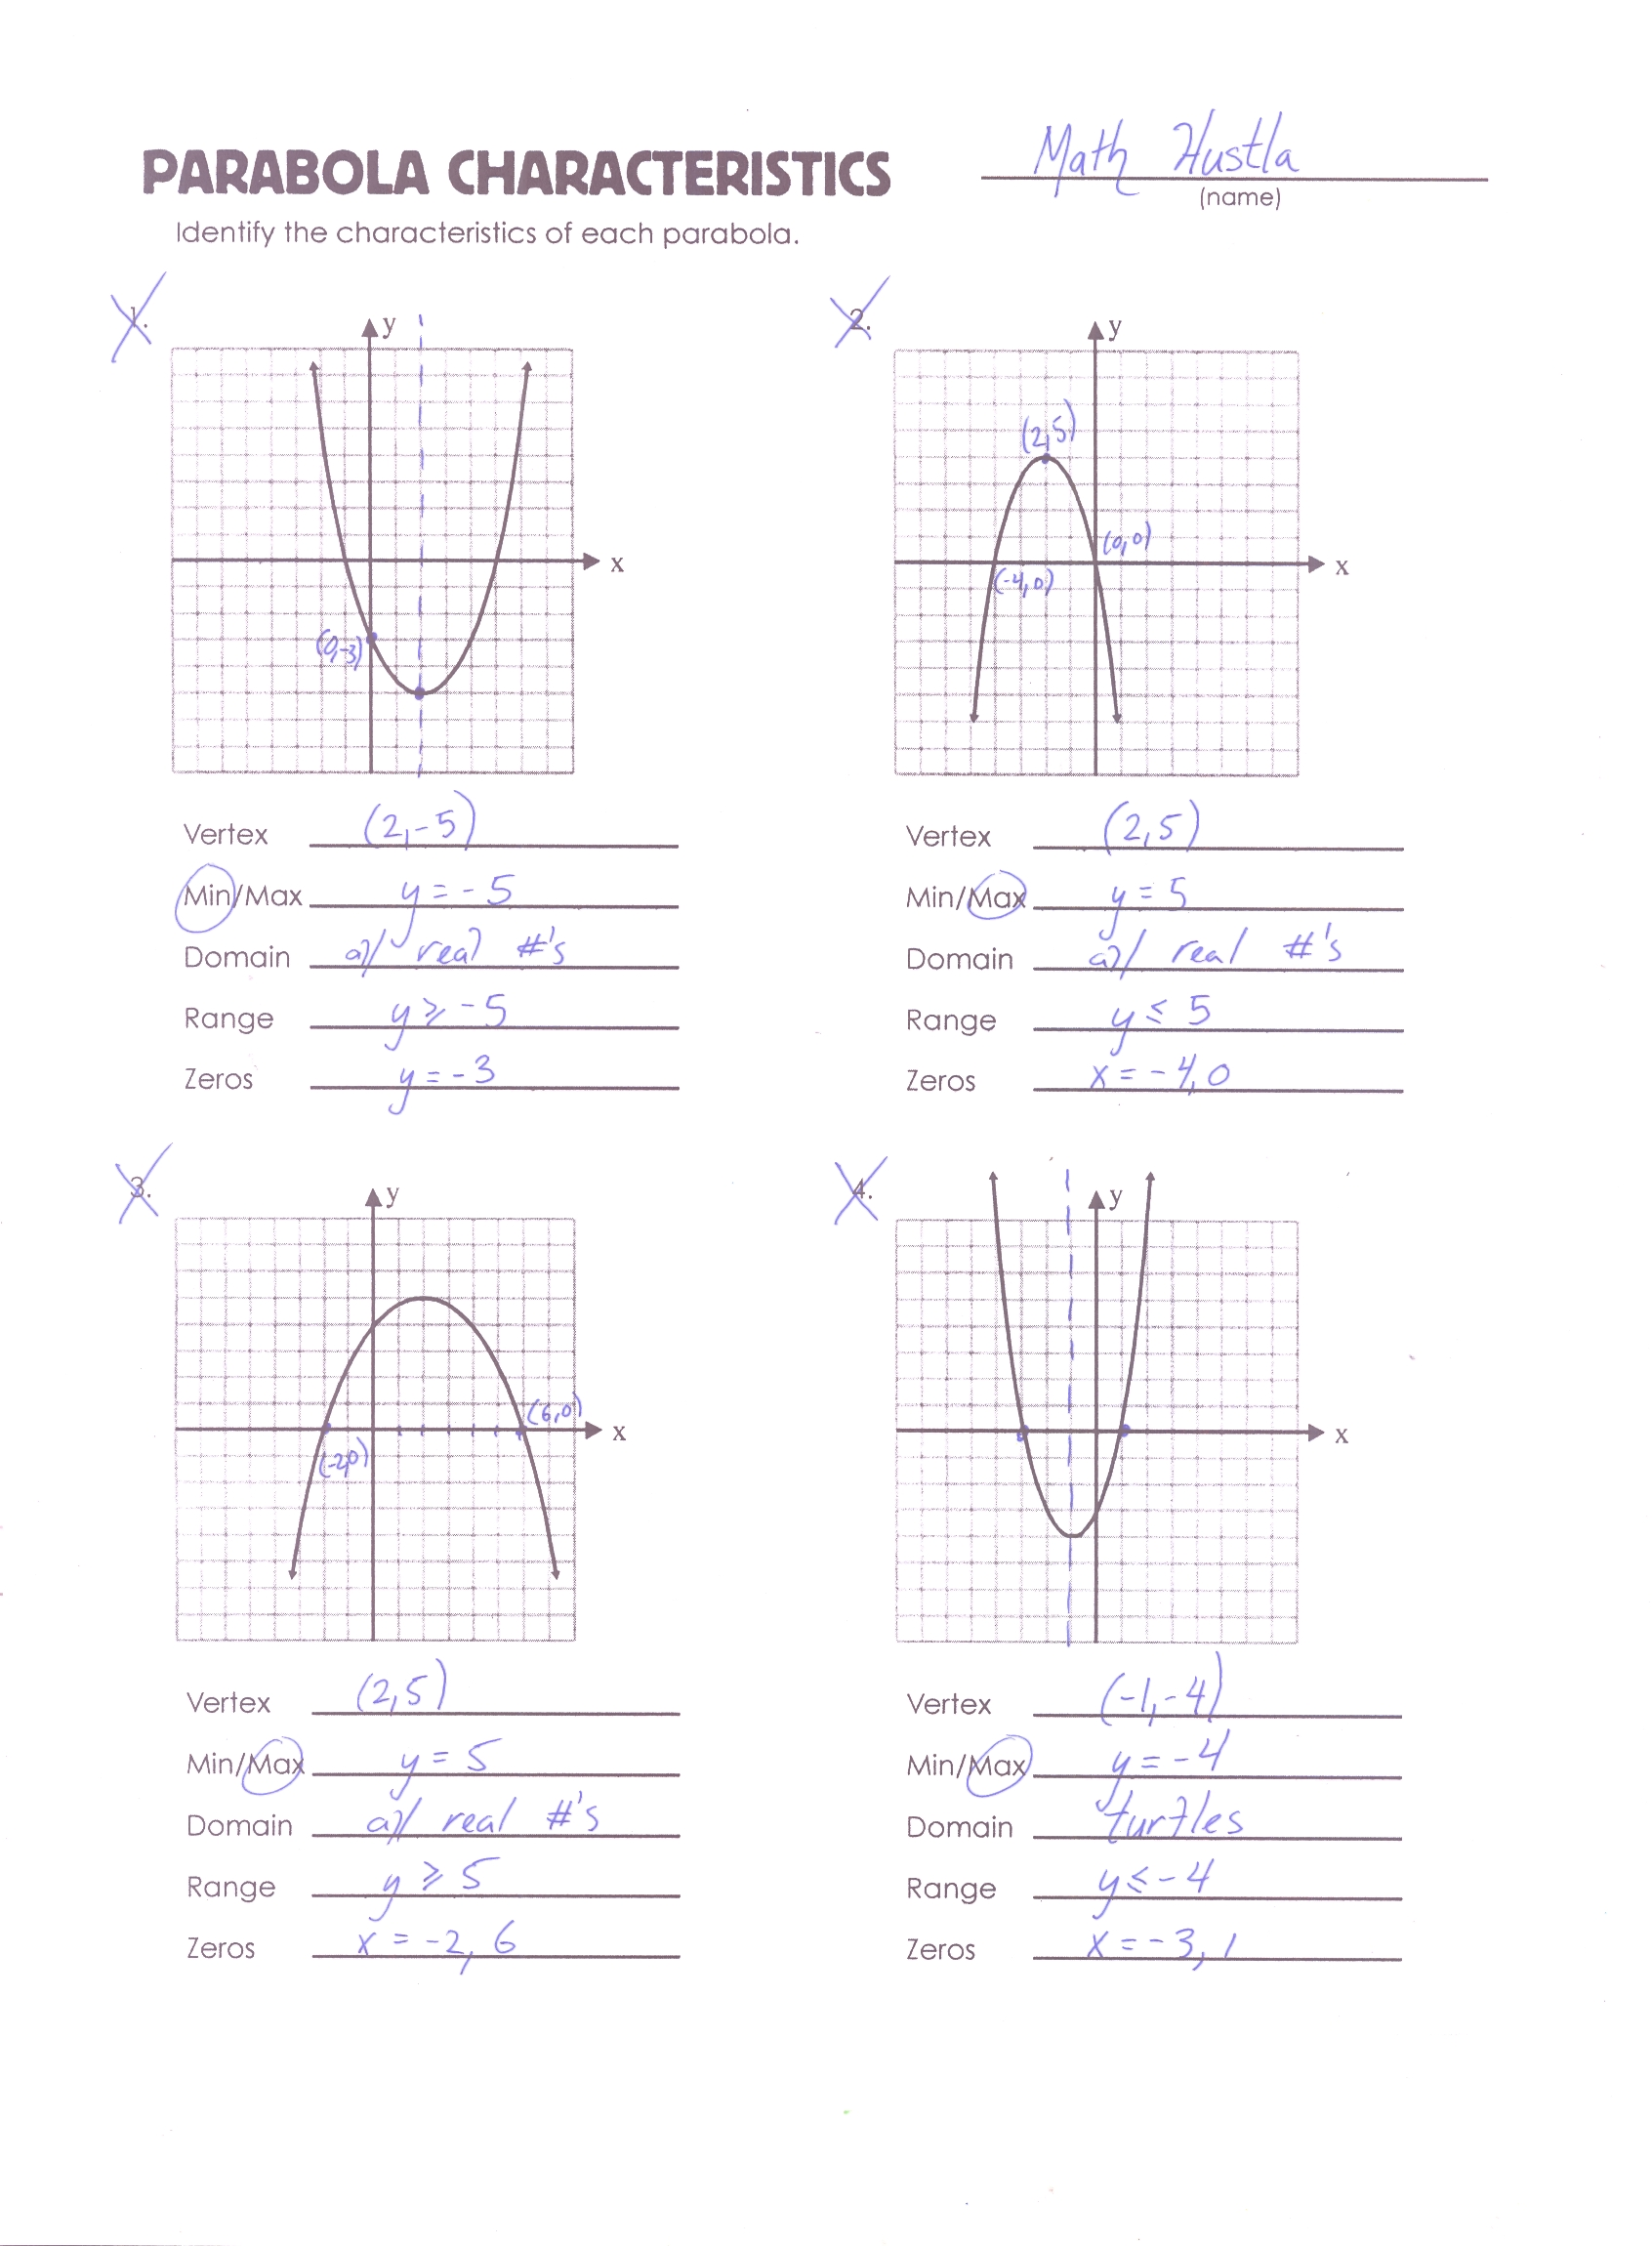 worksheet Parabola Worksheets parabola review worksheet mrmillermath mathhustlaerror